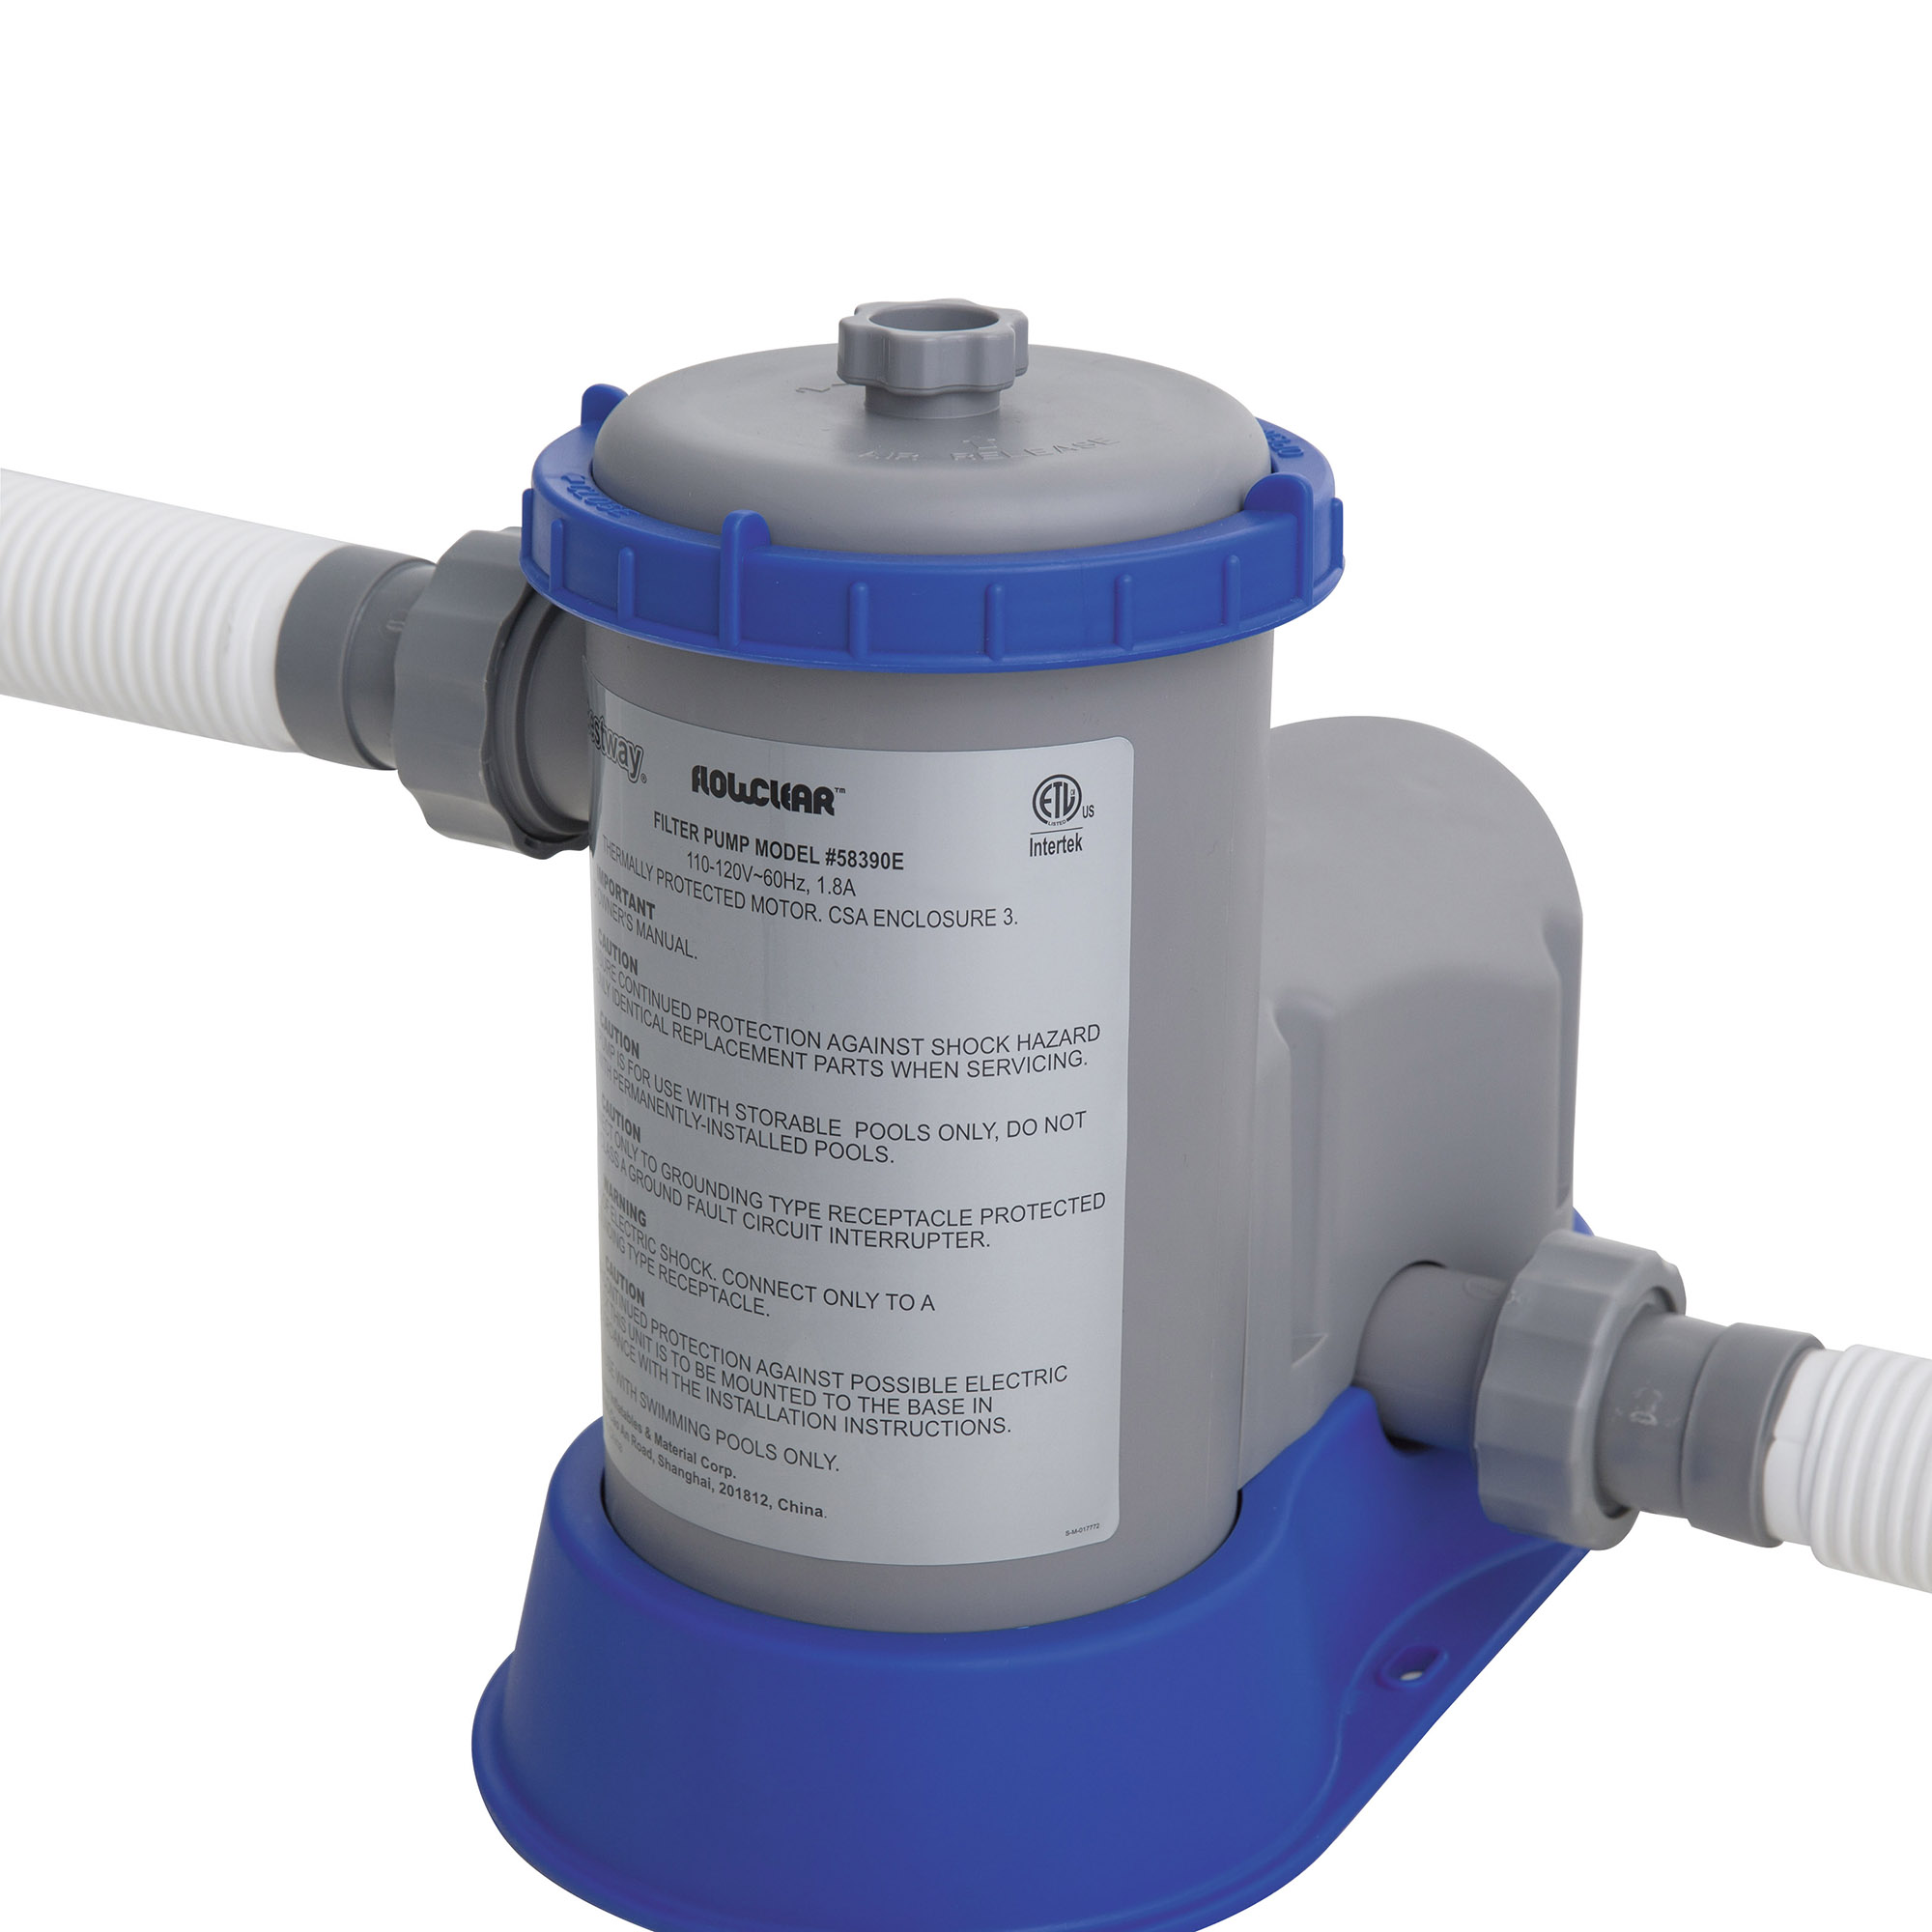 Bestway flow clear 1500 gph above ground swimming pool filter pump 58390e ebay for Swimming pool pumps for above ground pools